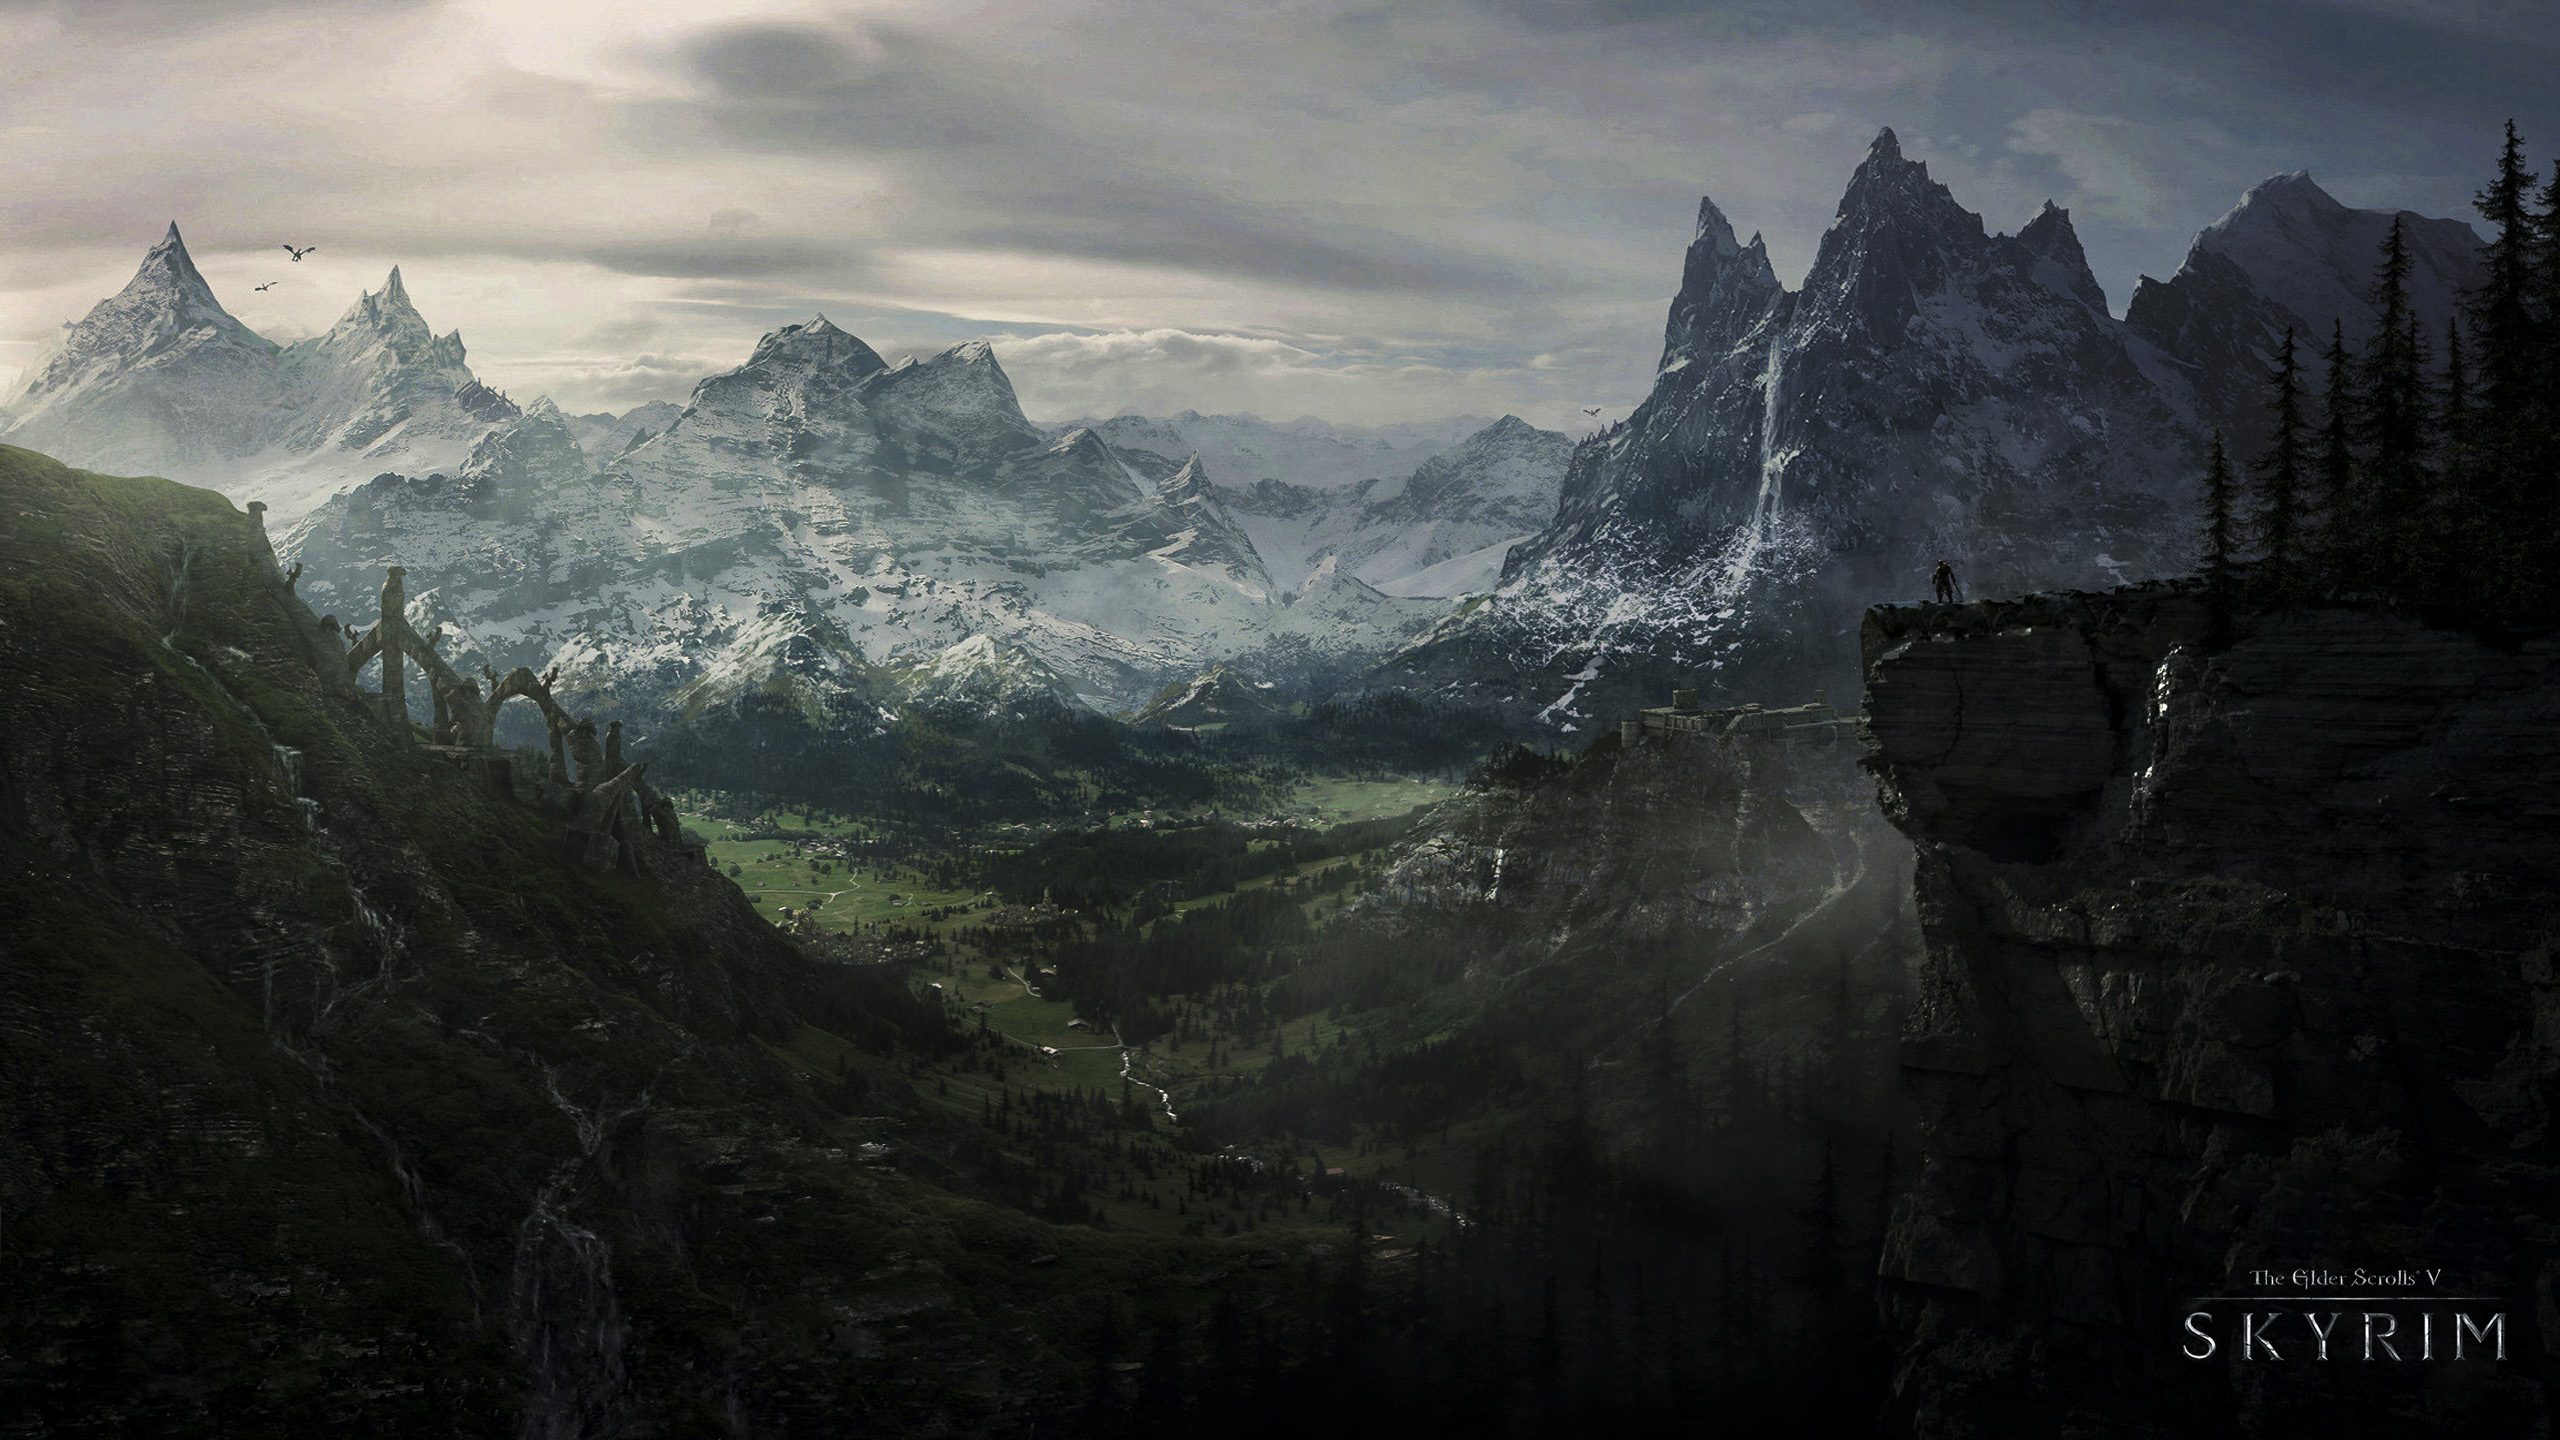 458 skyrim hd wallpapers | background images - wallpaper abyss